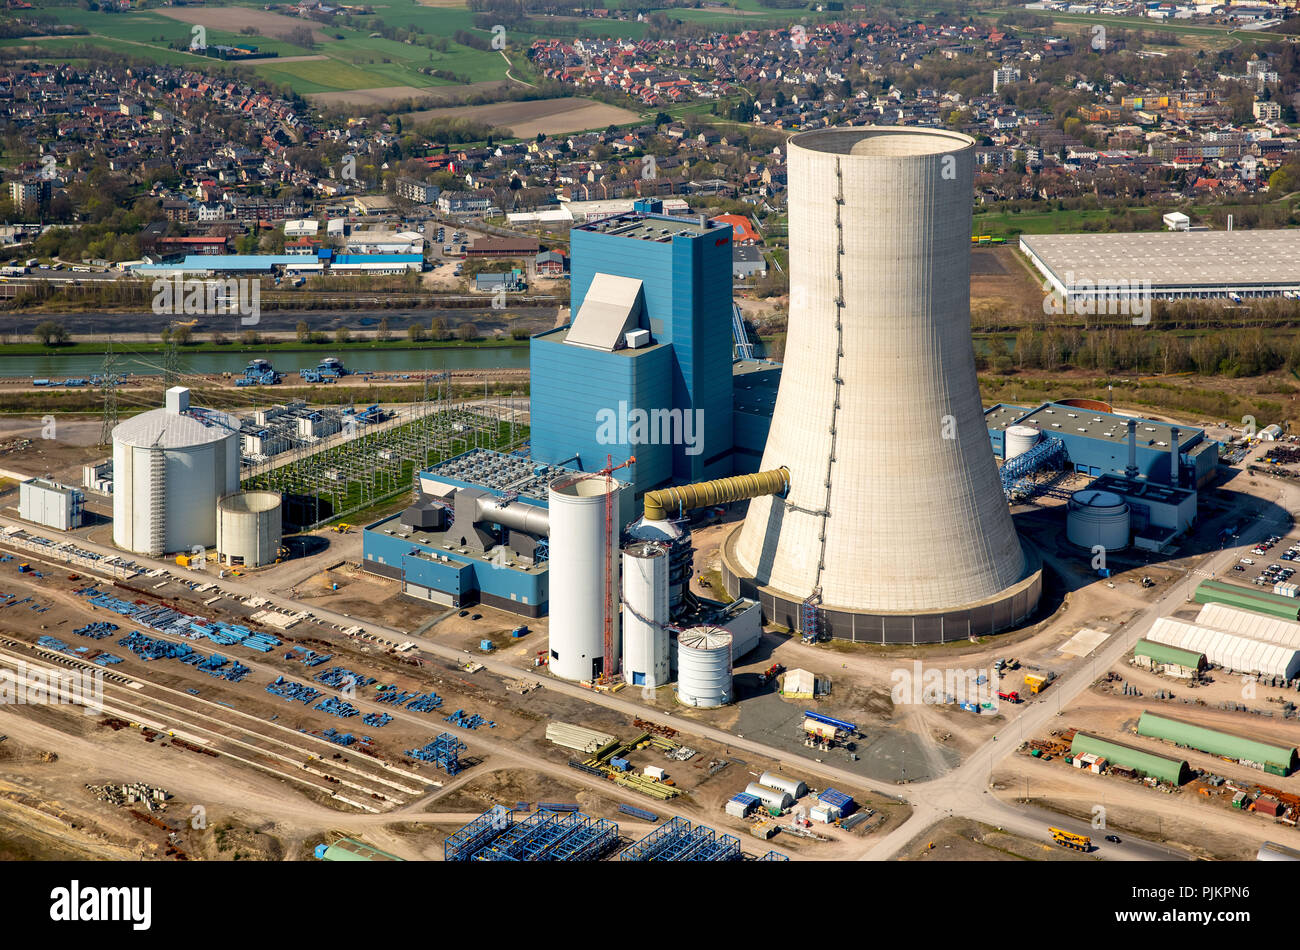 EON, E.on 4 Datteln, coal-fired power plant, fossil energy, construction freeze cooling tower, Datteln, Ruhr area, North Rhine-Westphalia, Germany - Stock Image